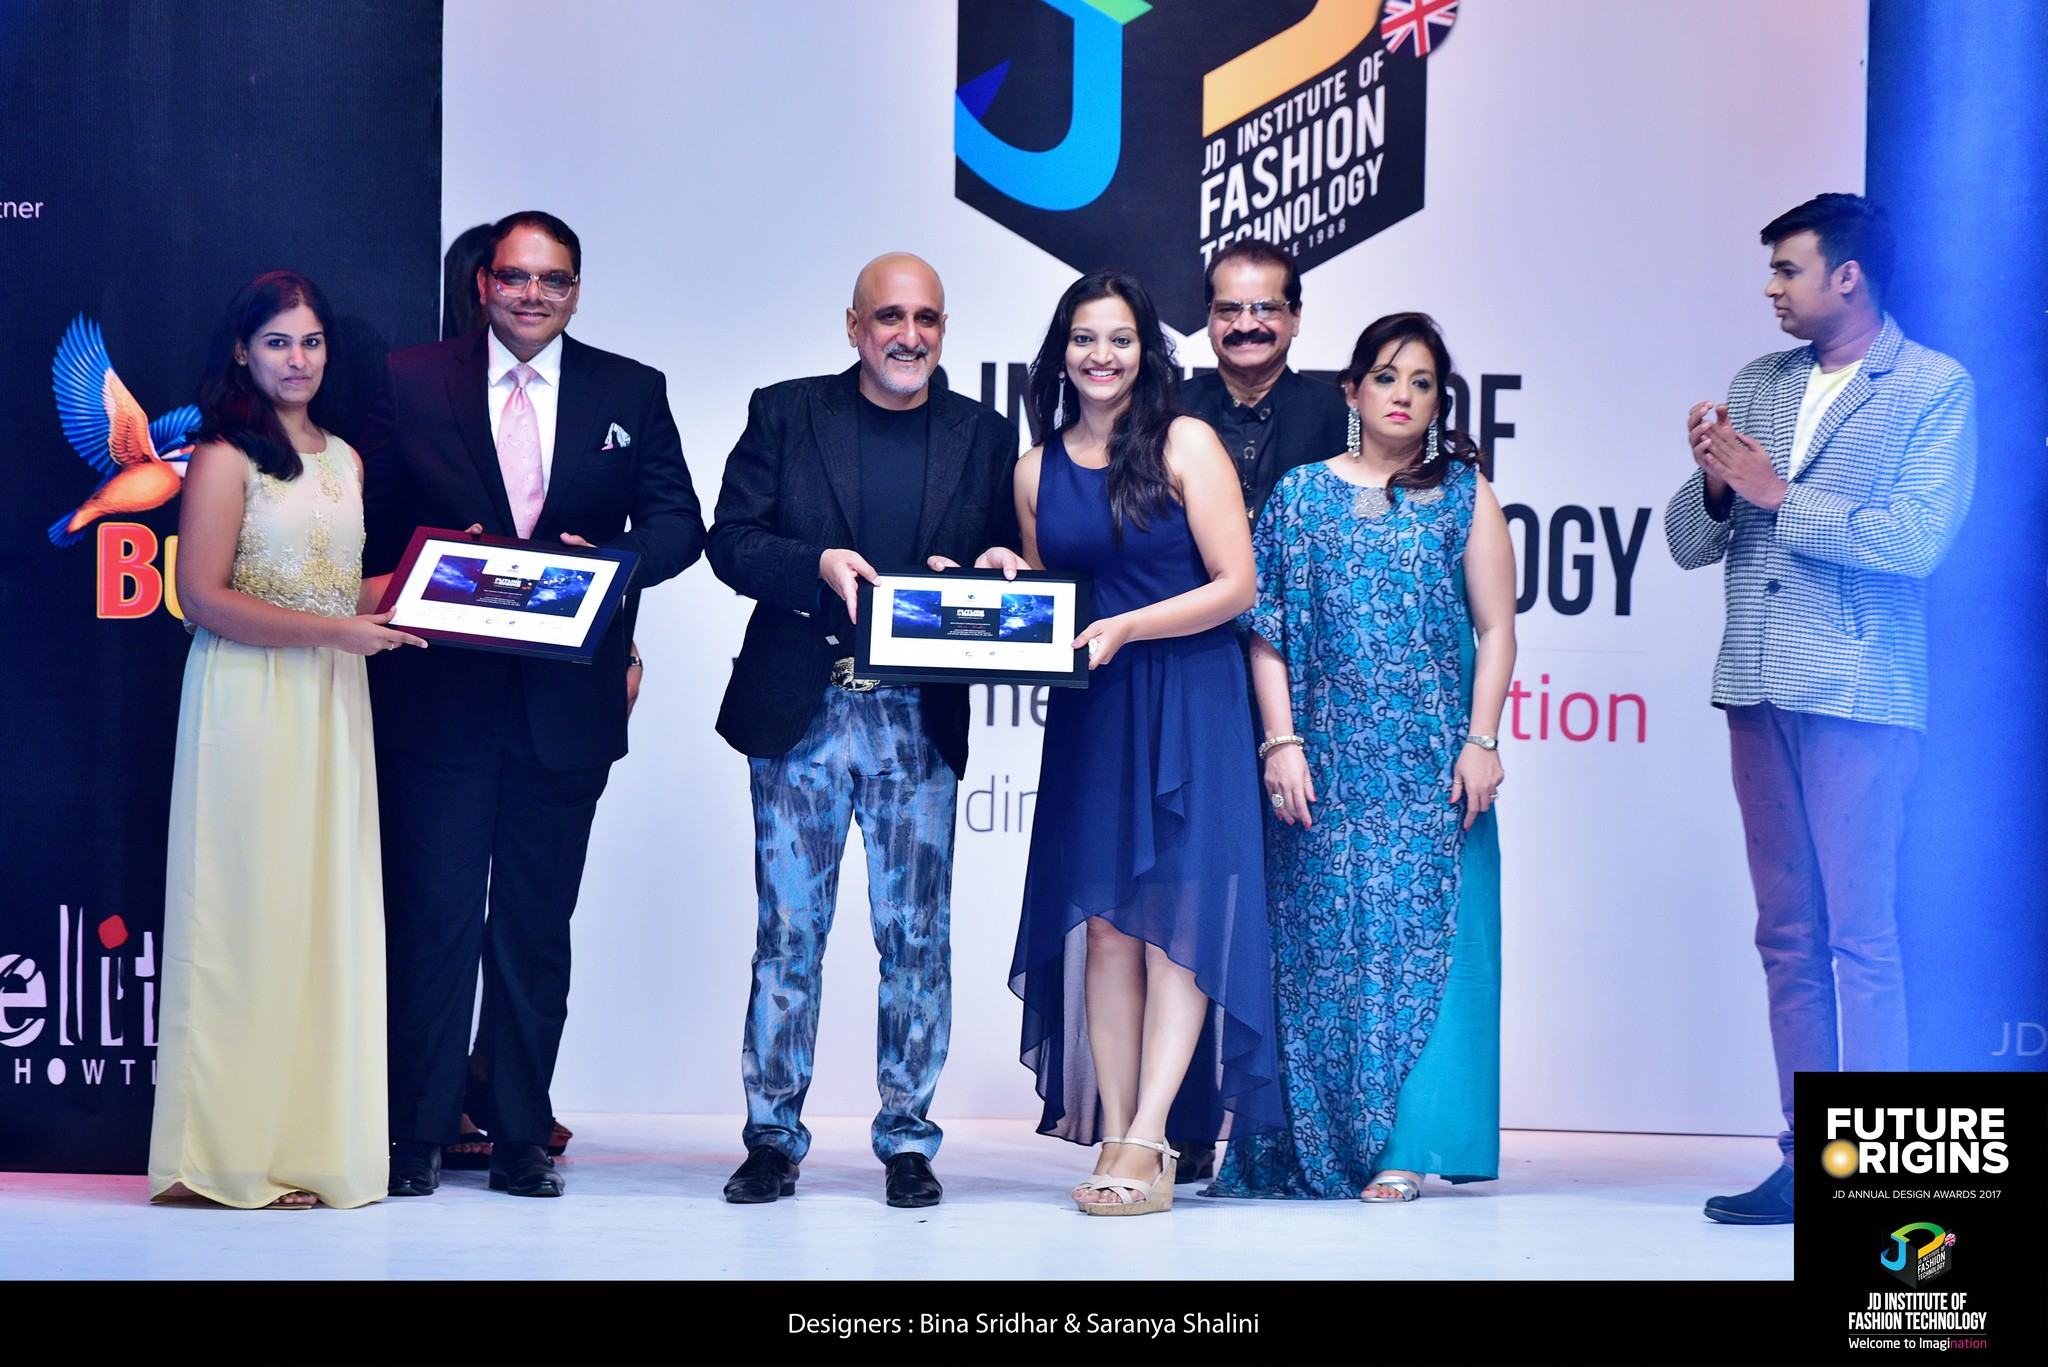 Artitectural Chic - Future Origin - JD Annual Design Awards 2017 | Photography : Jerin Nath artitectural chic - Artitectural Chic Future Origin JD Annual Design Awards 2017 5 - Artitectural Chic – Future Origin – JD Annual Design Awards 2017